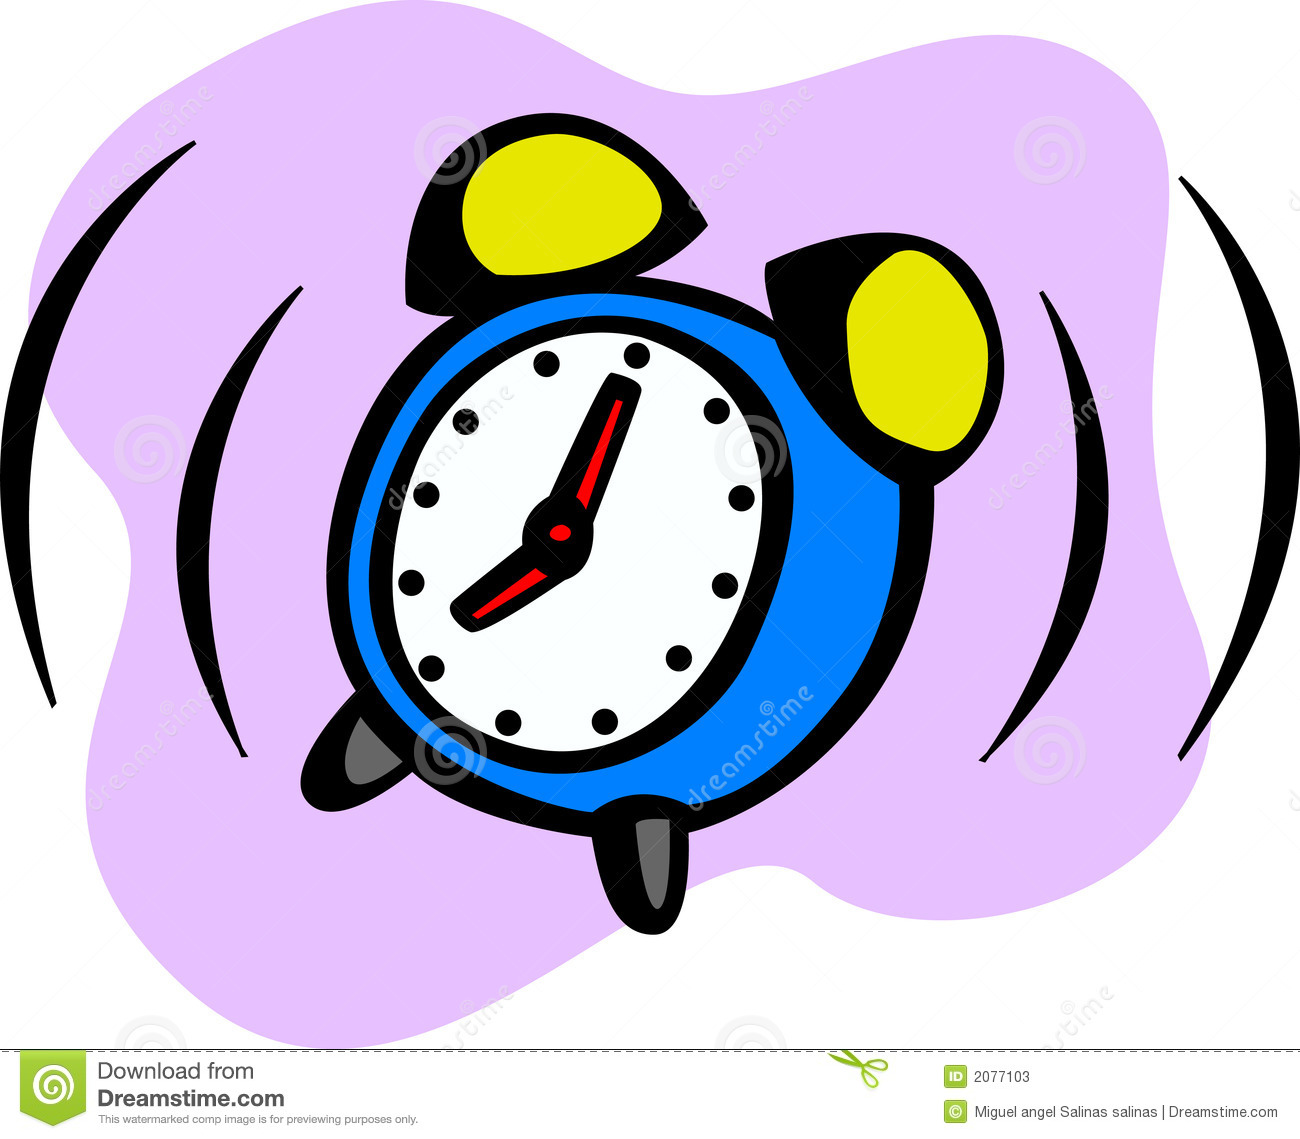 7 clipart alarm clock. Ringing